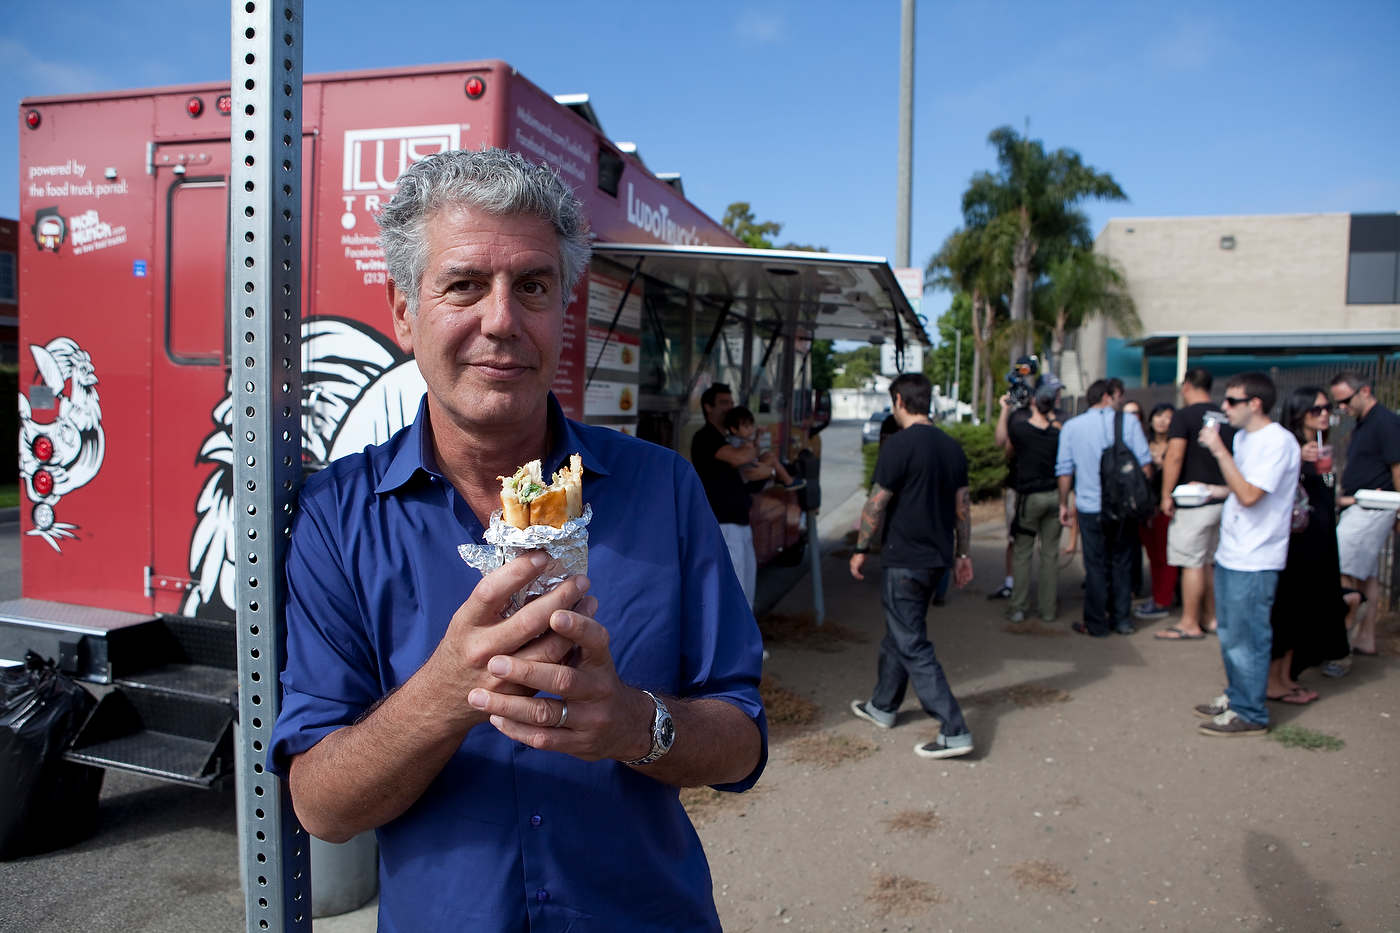 Anthony Bourdain, Layover, The Travel Channel.